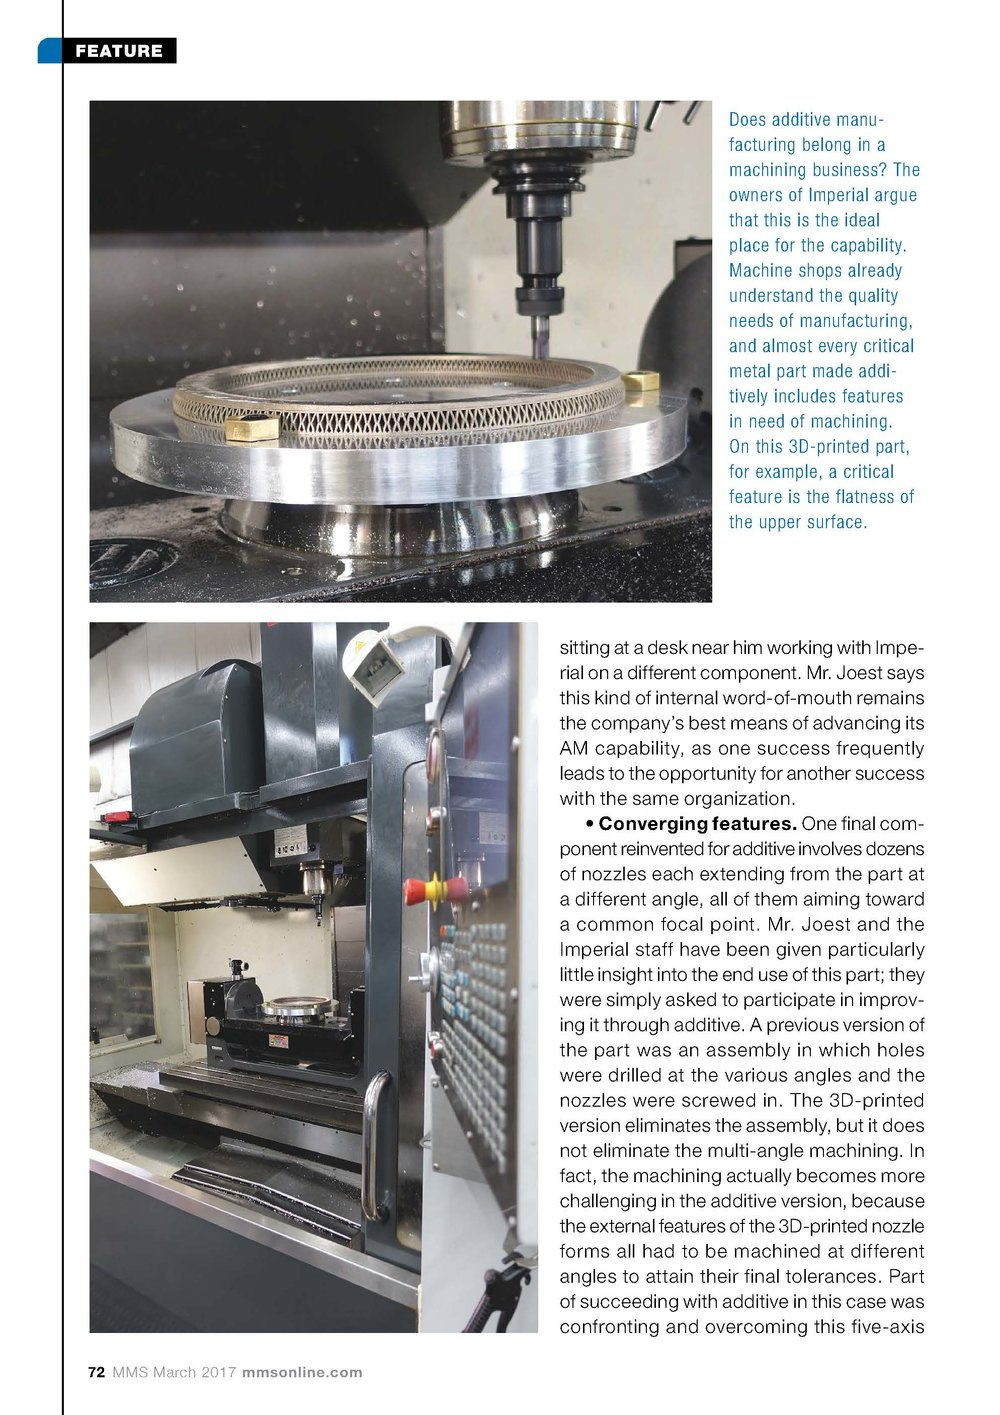 Imperial Feature - Modern Machine Shop Mar 2017 10.jpg